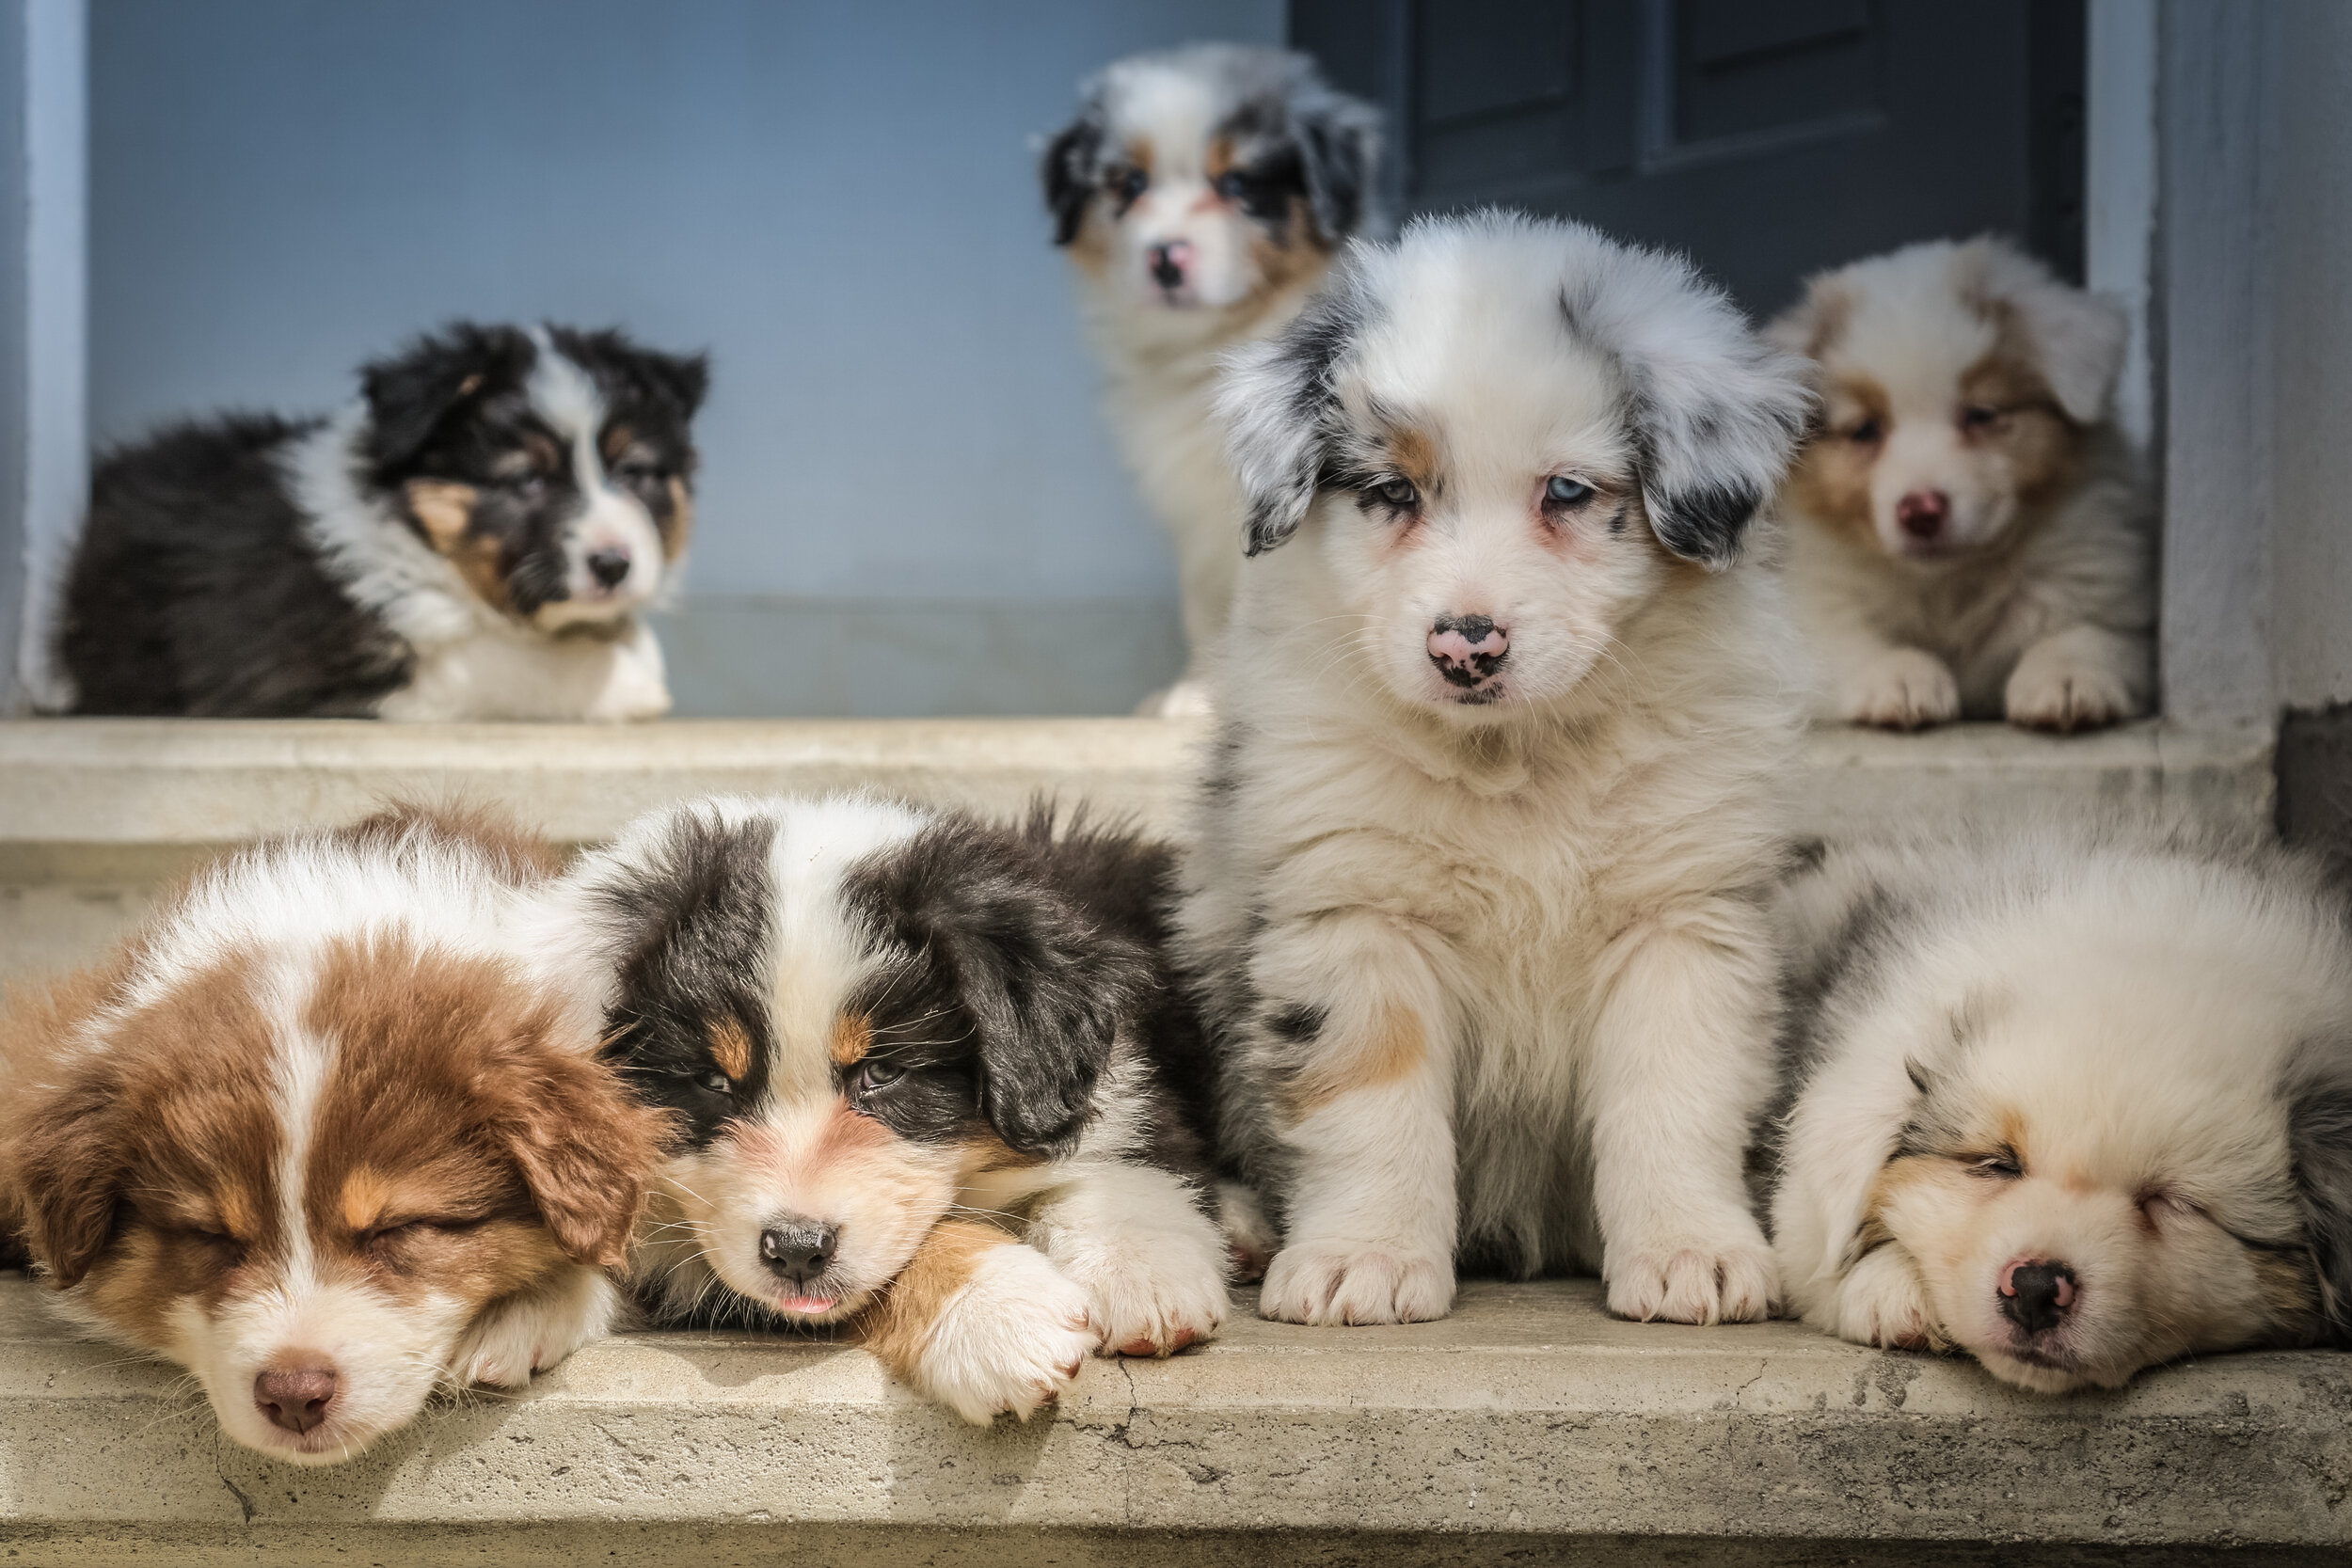 In a litter of puppies, you need to pick only one. The same goes for selecting your programming language.